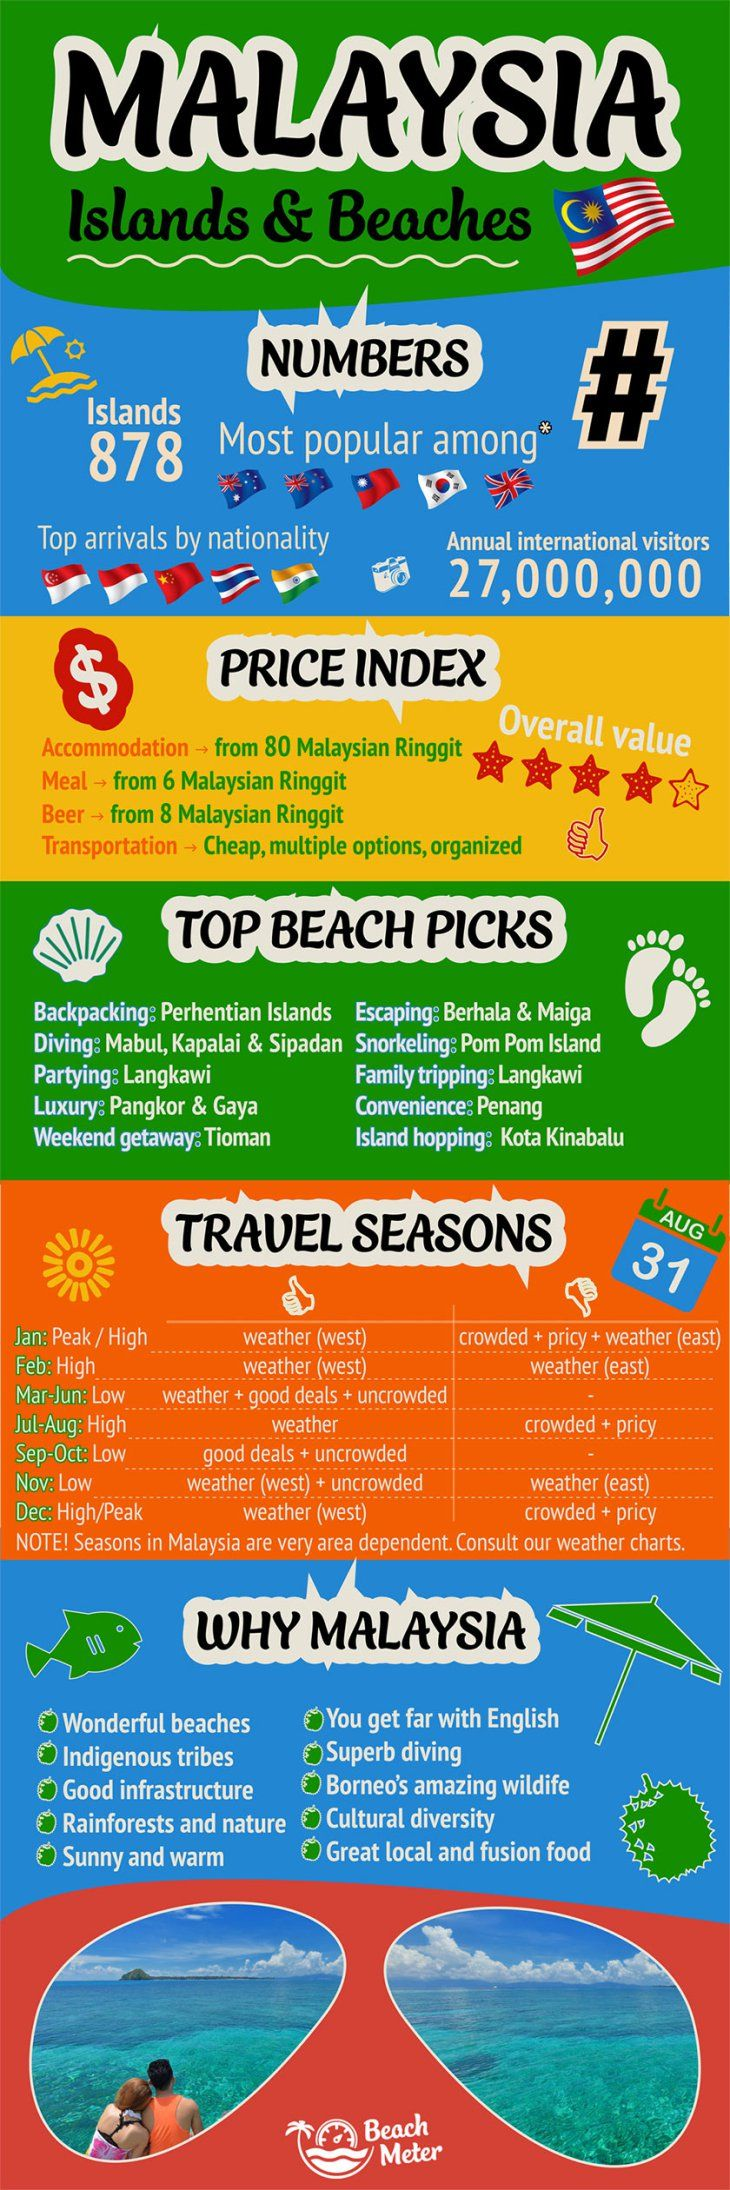 Malaysia and Borneo Travel Infographic with facts, prices, travel season, and unique selling points.